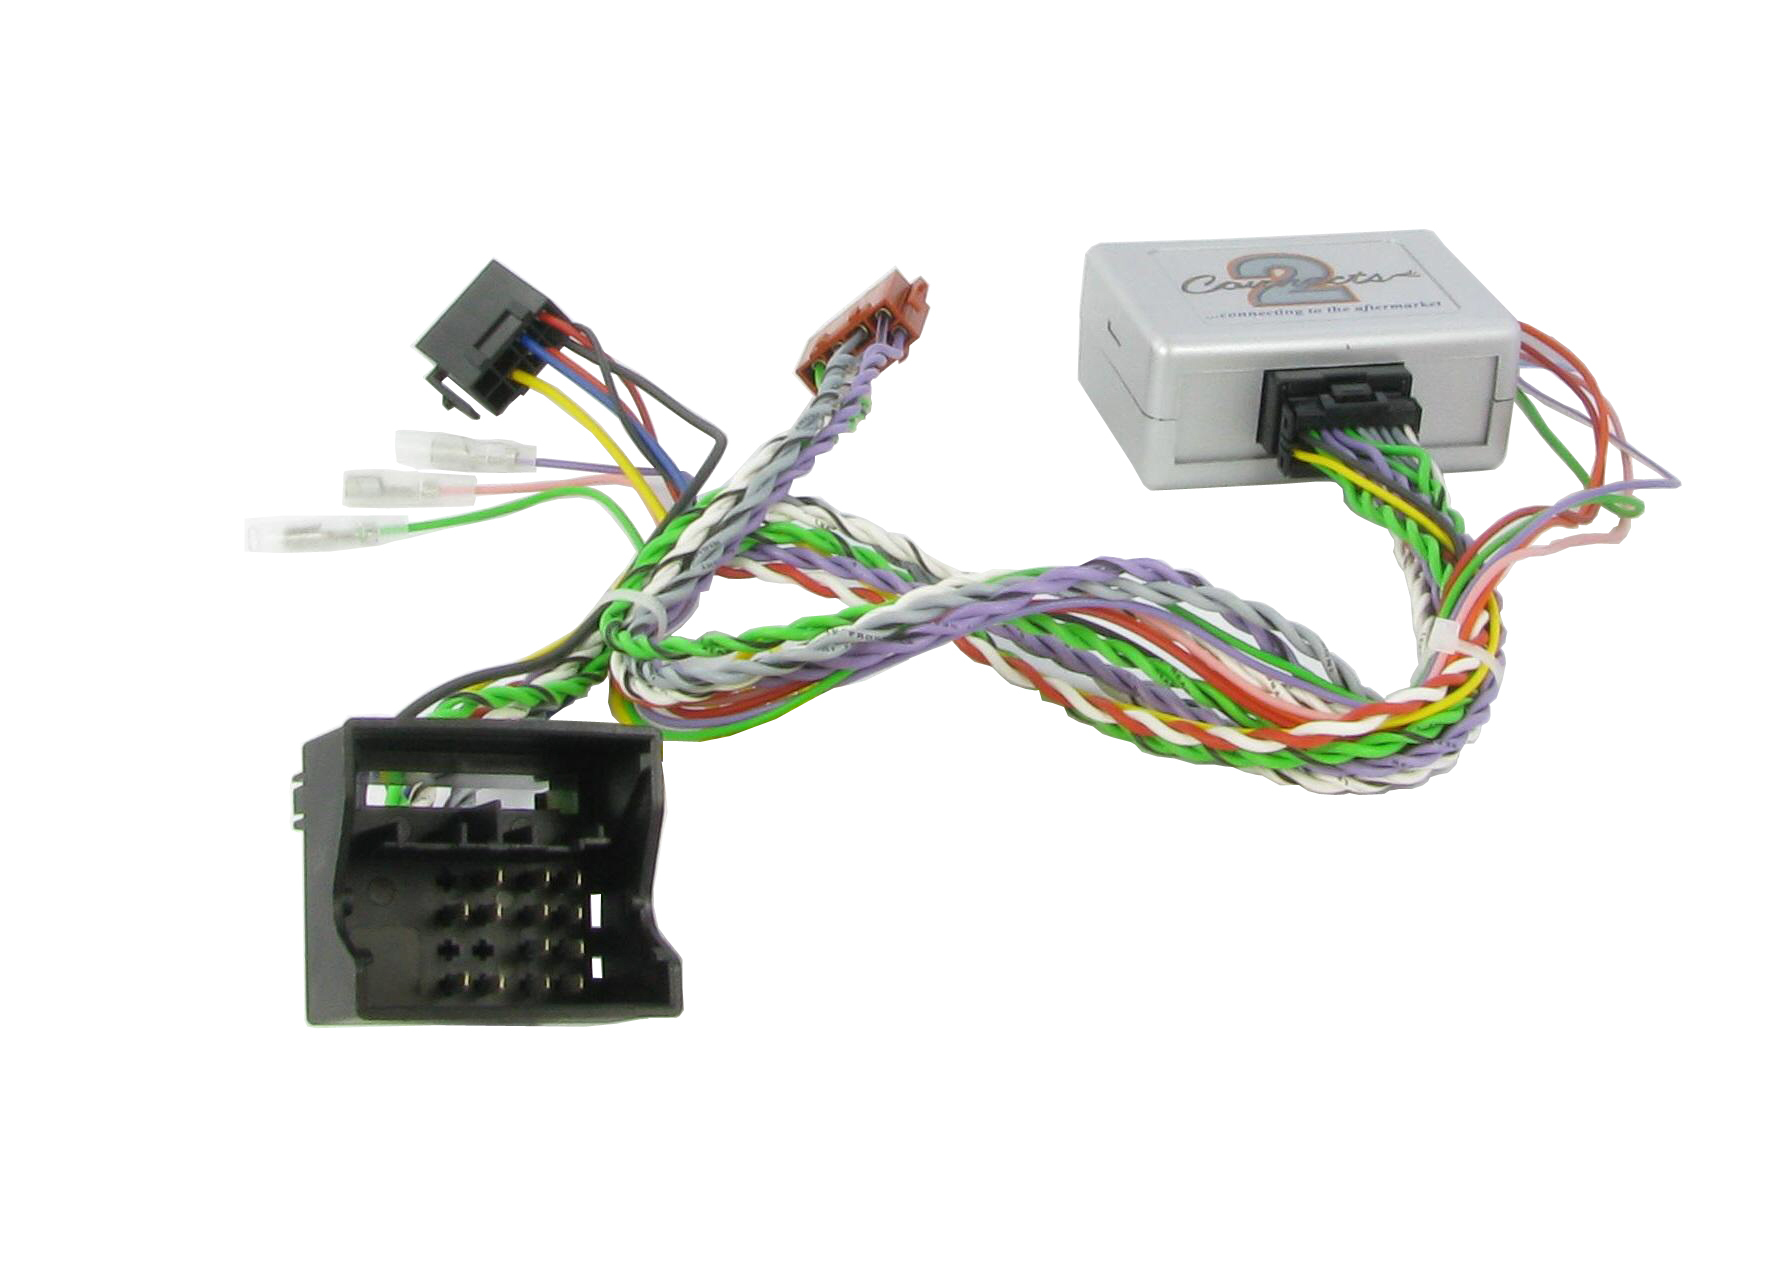 ctspg013 peugeot steering wheel control interface plug and play Steering Column Wiring Harness Non-Automotive at gsmx.co